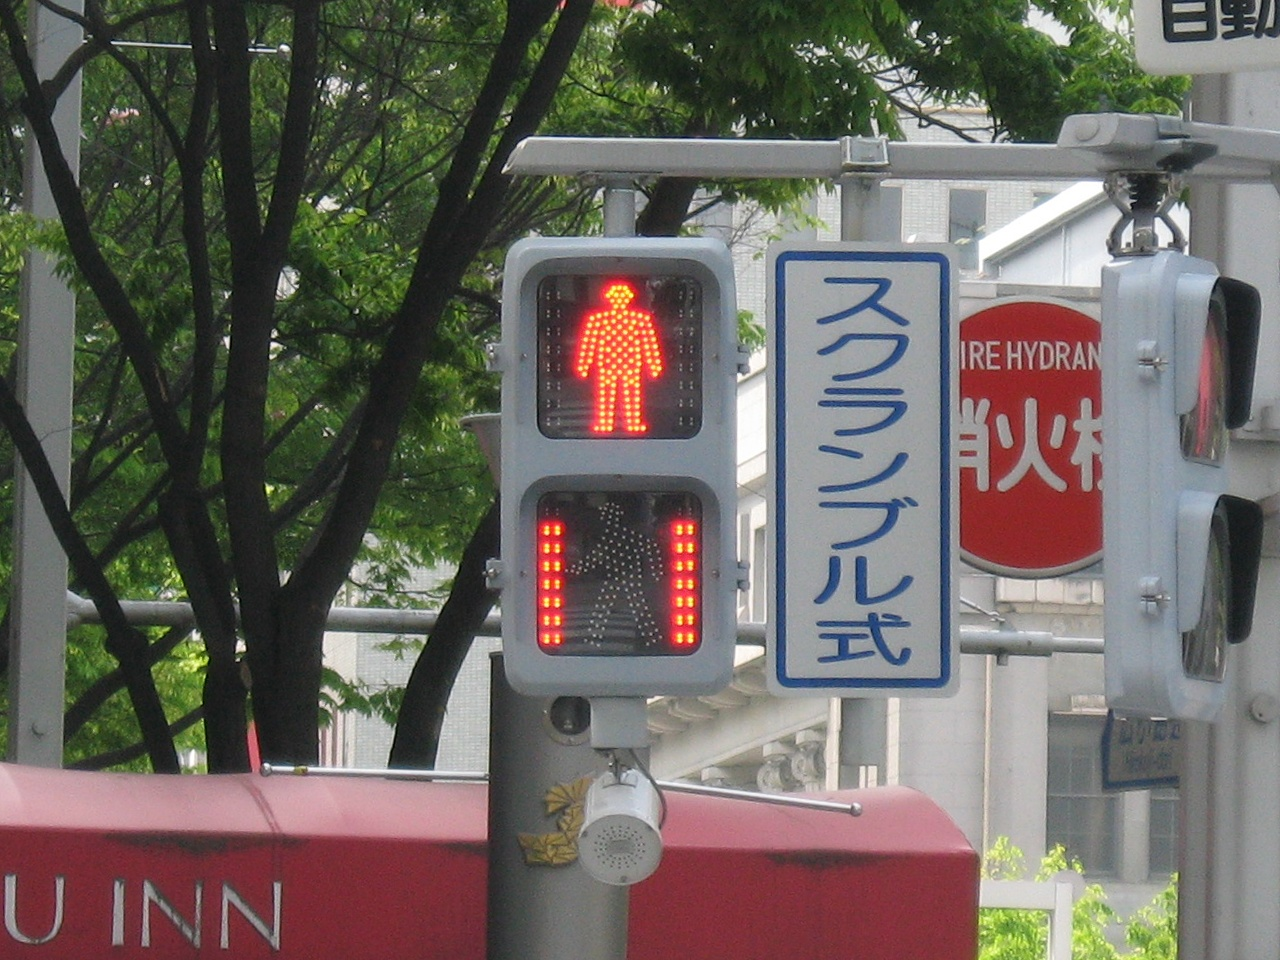 Pedestrian_Signal_with_Waiting_Time_Indicator